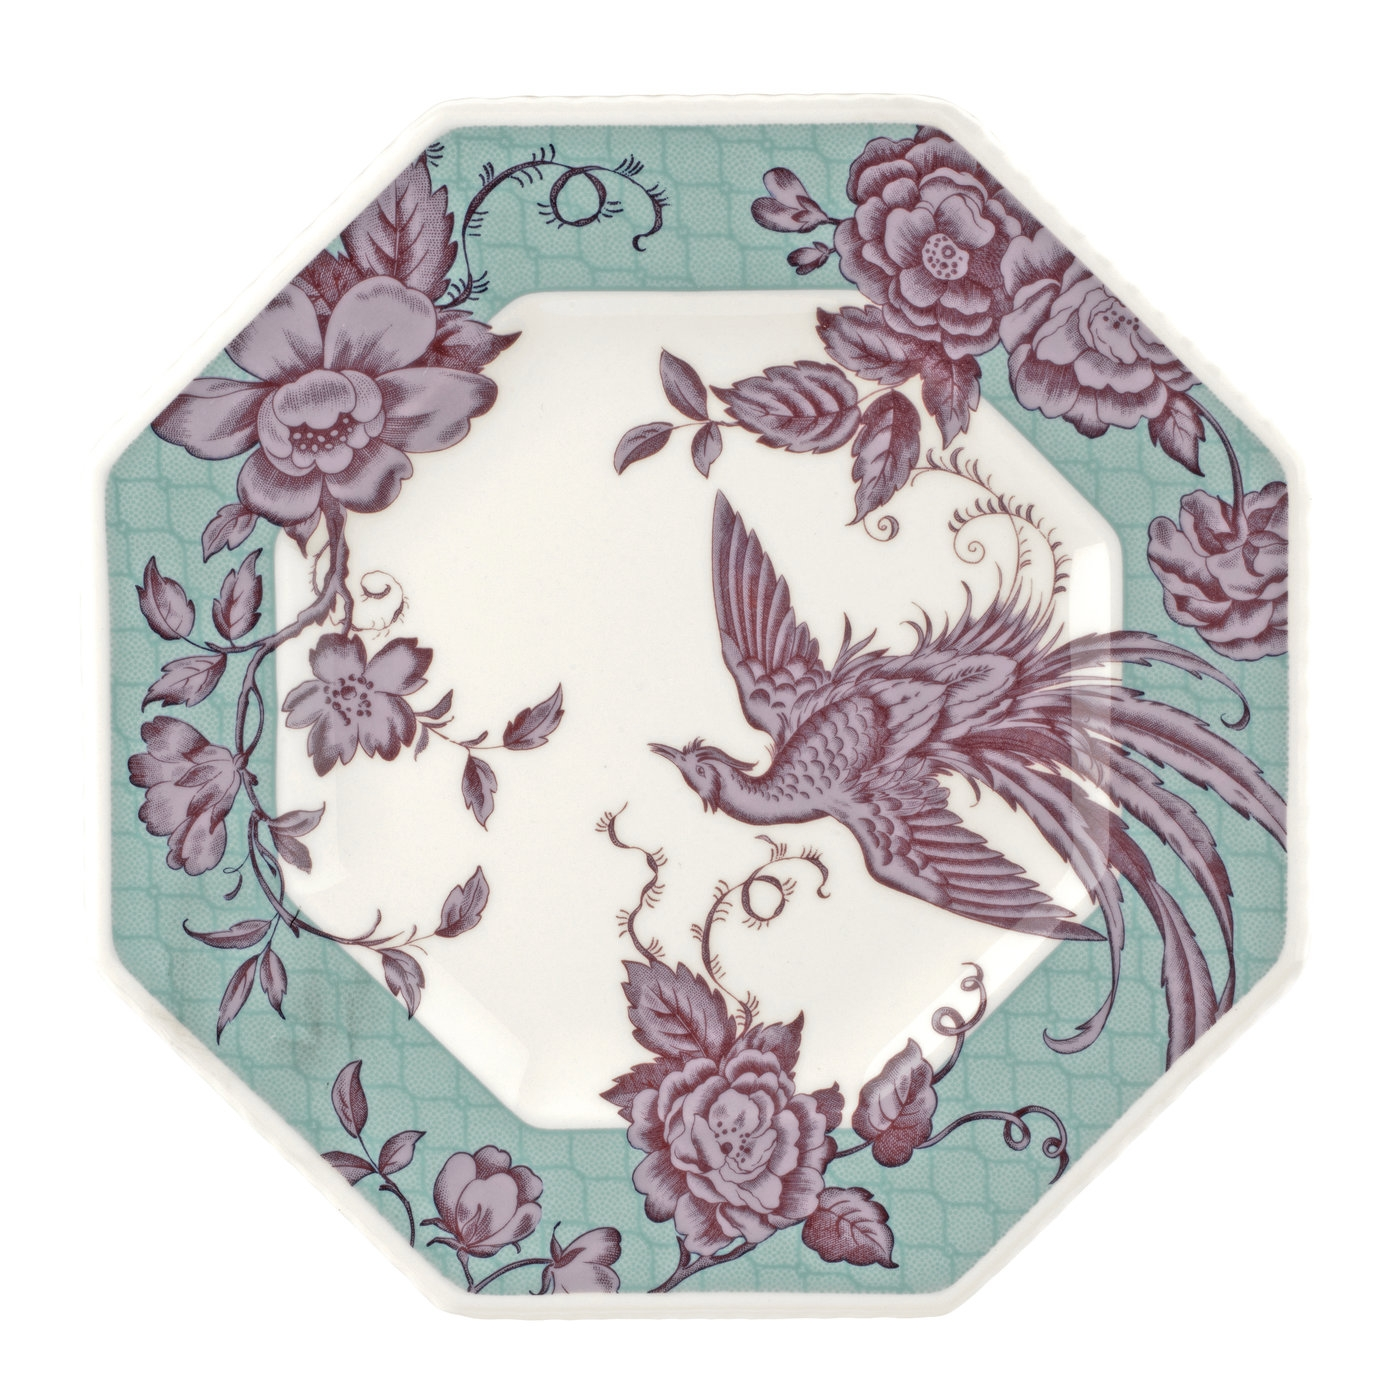 Spode Kingsley Teal 9.5 Inch Octagonal Plate image number null